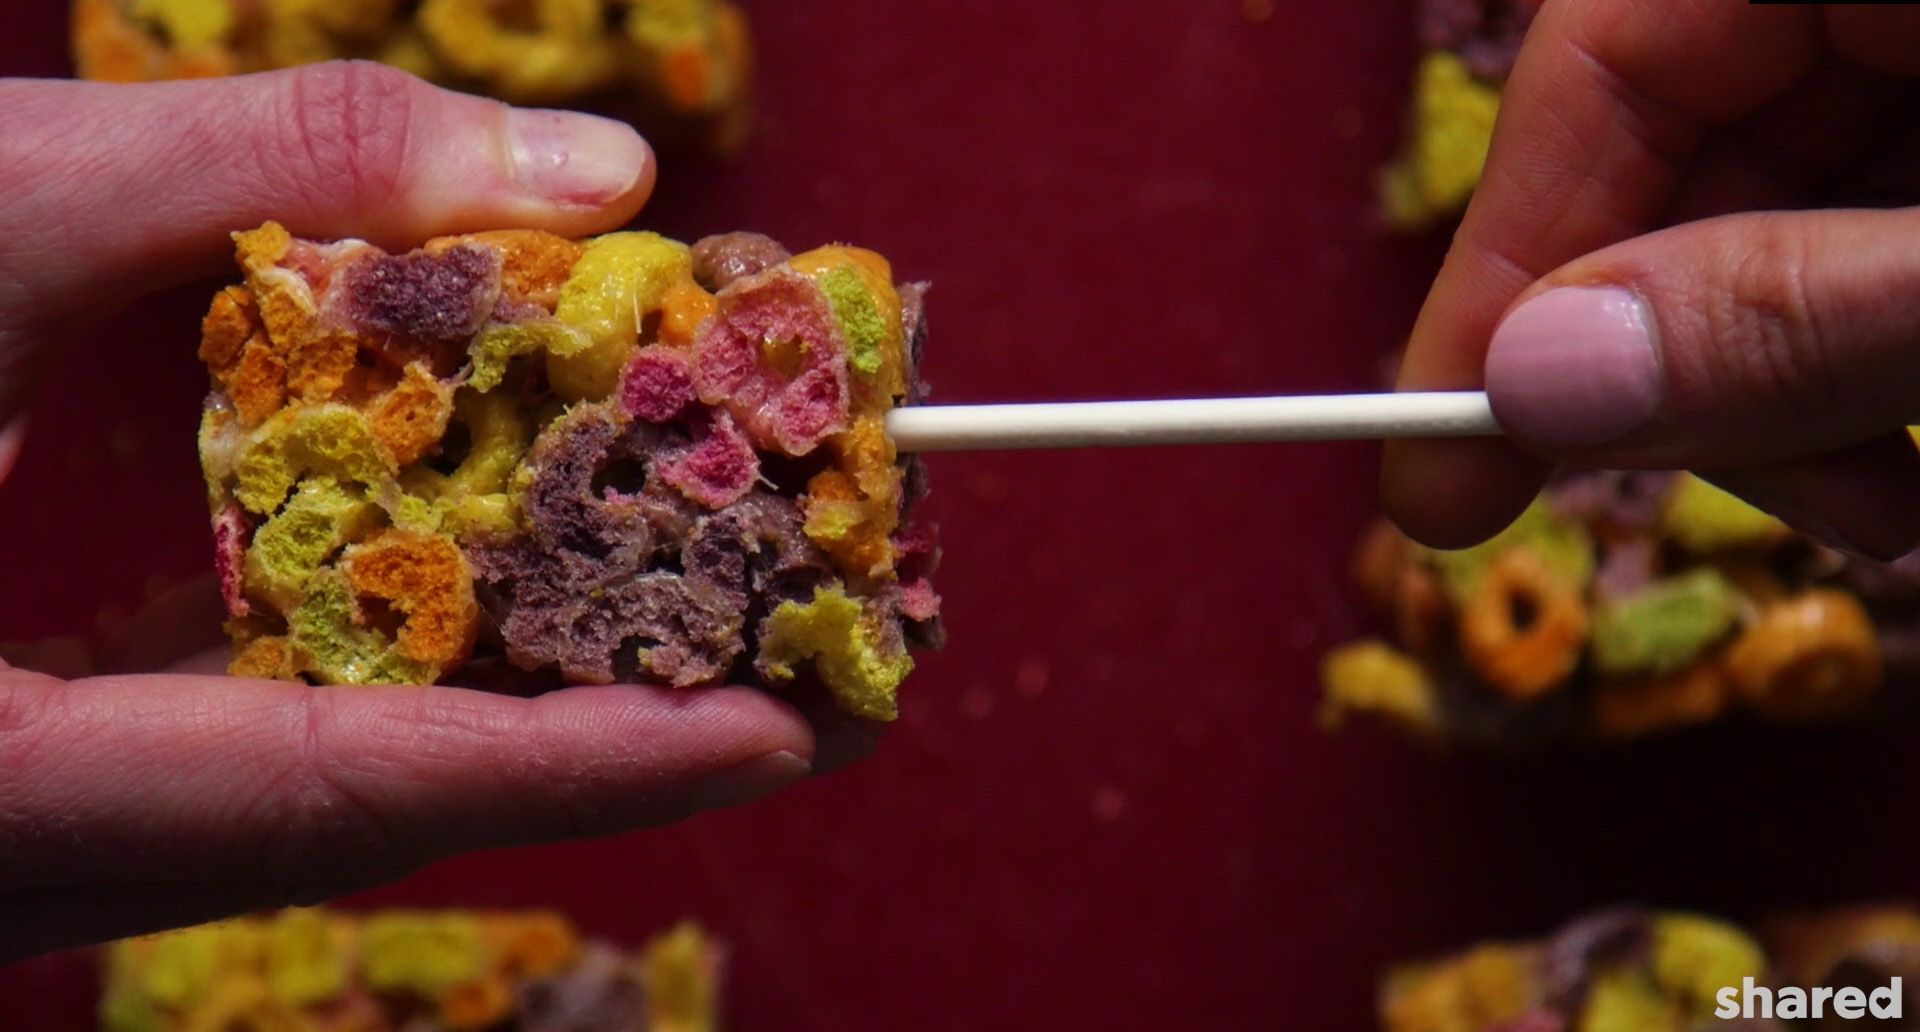 fruit loop square being stuck onto a cake-pop stick